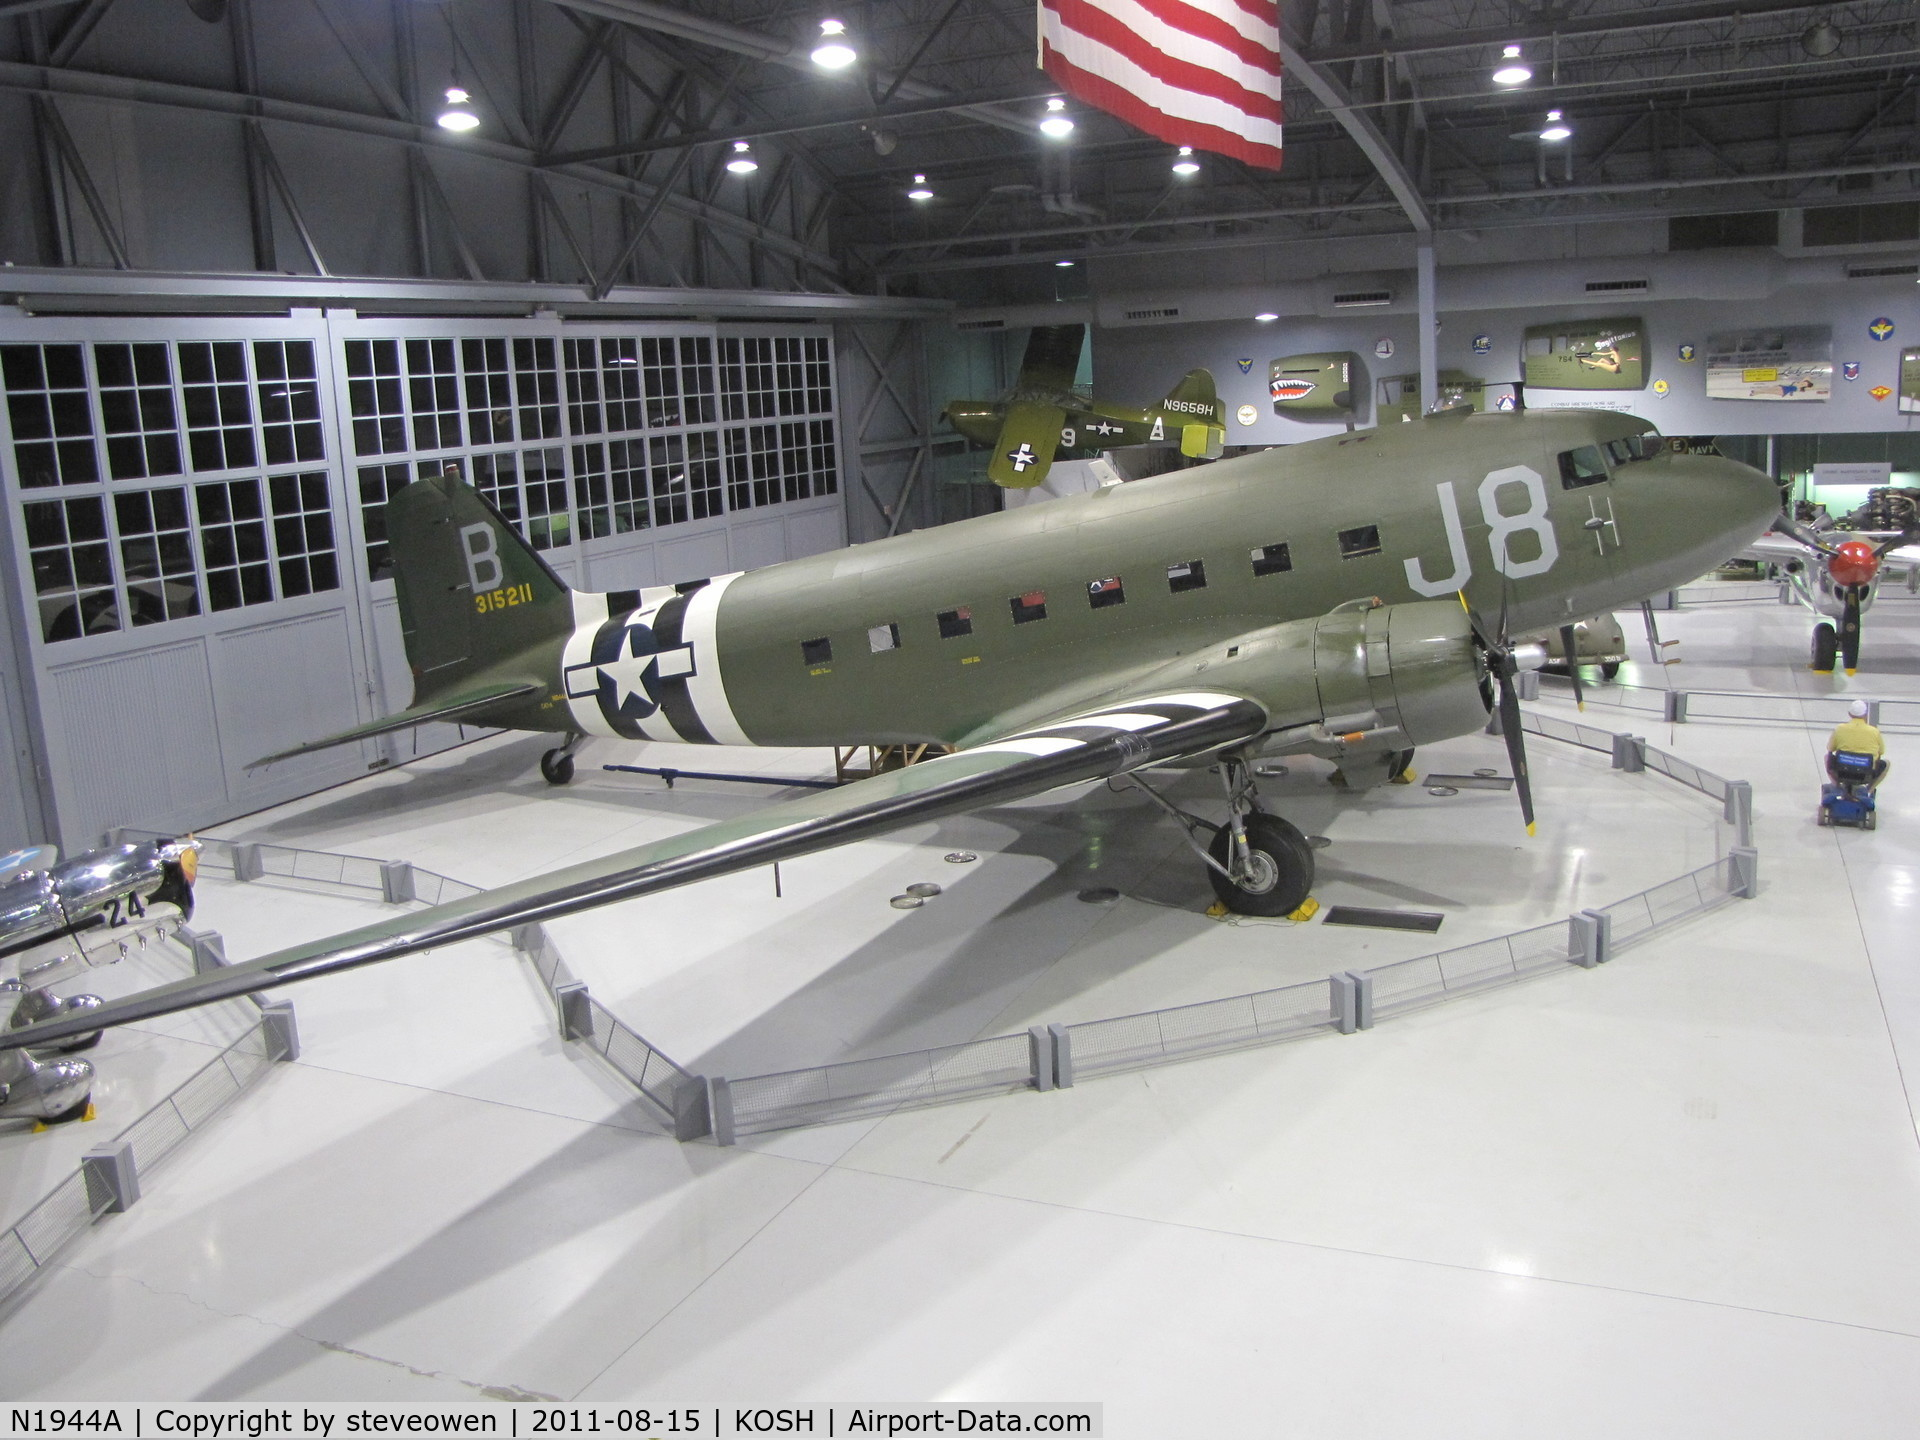 N1944A, 1944 Douglas DC3C-S1C3G C/N 19677, Kermit Weeks Combat veteran C-47 safe in the EAA Museum Hangar @KOSH after it's trans Atlantic flight